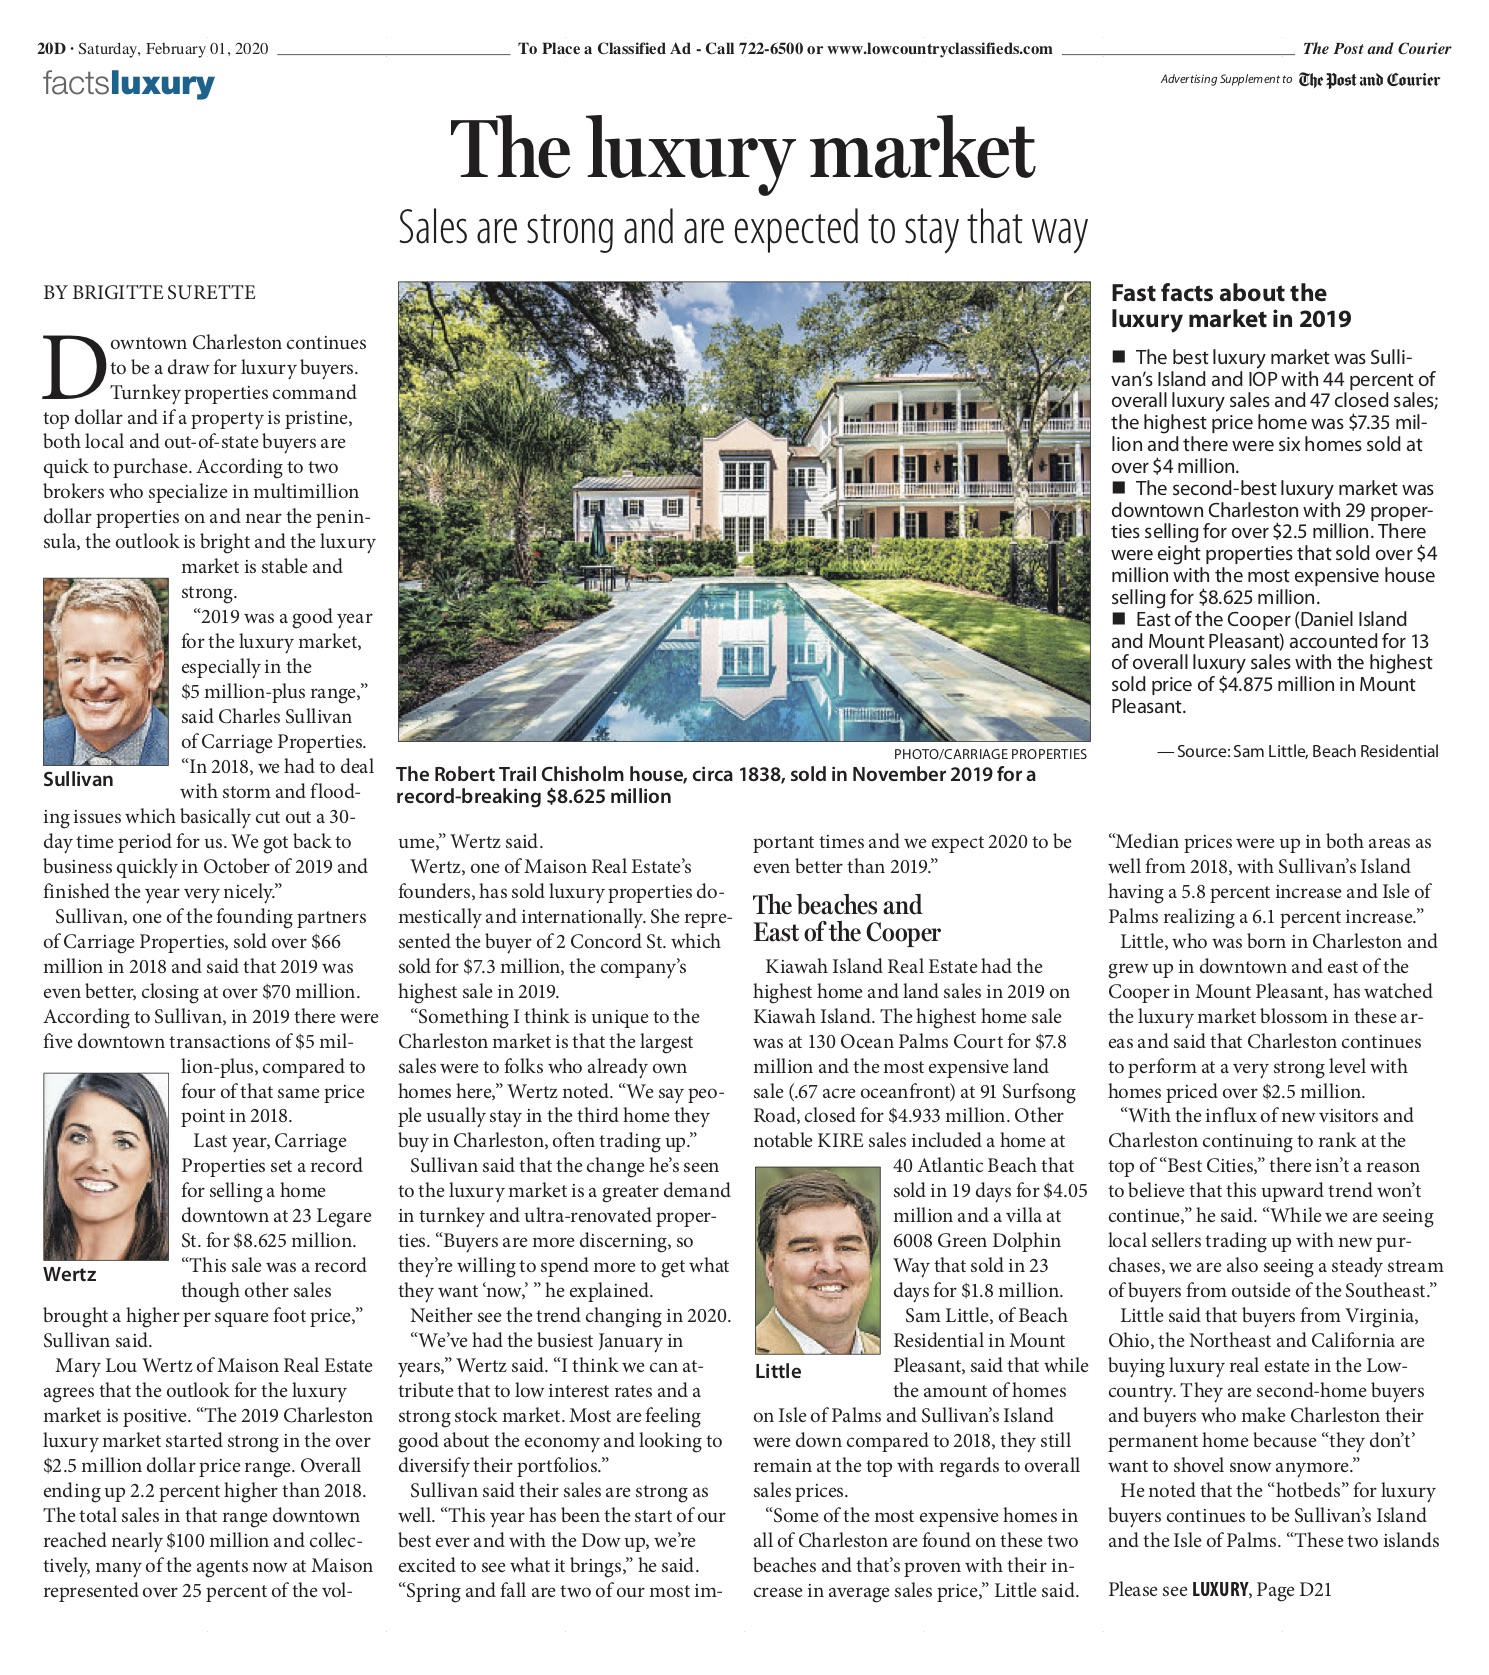 February 2020 Post and Courier - Luxury Property Market in Charleston